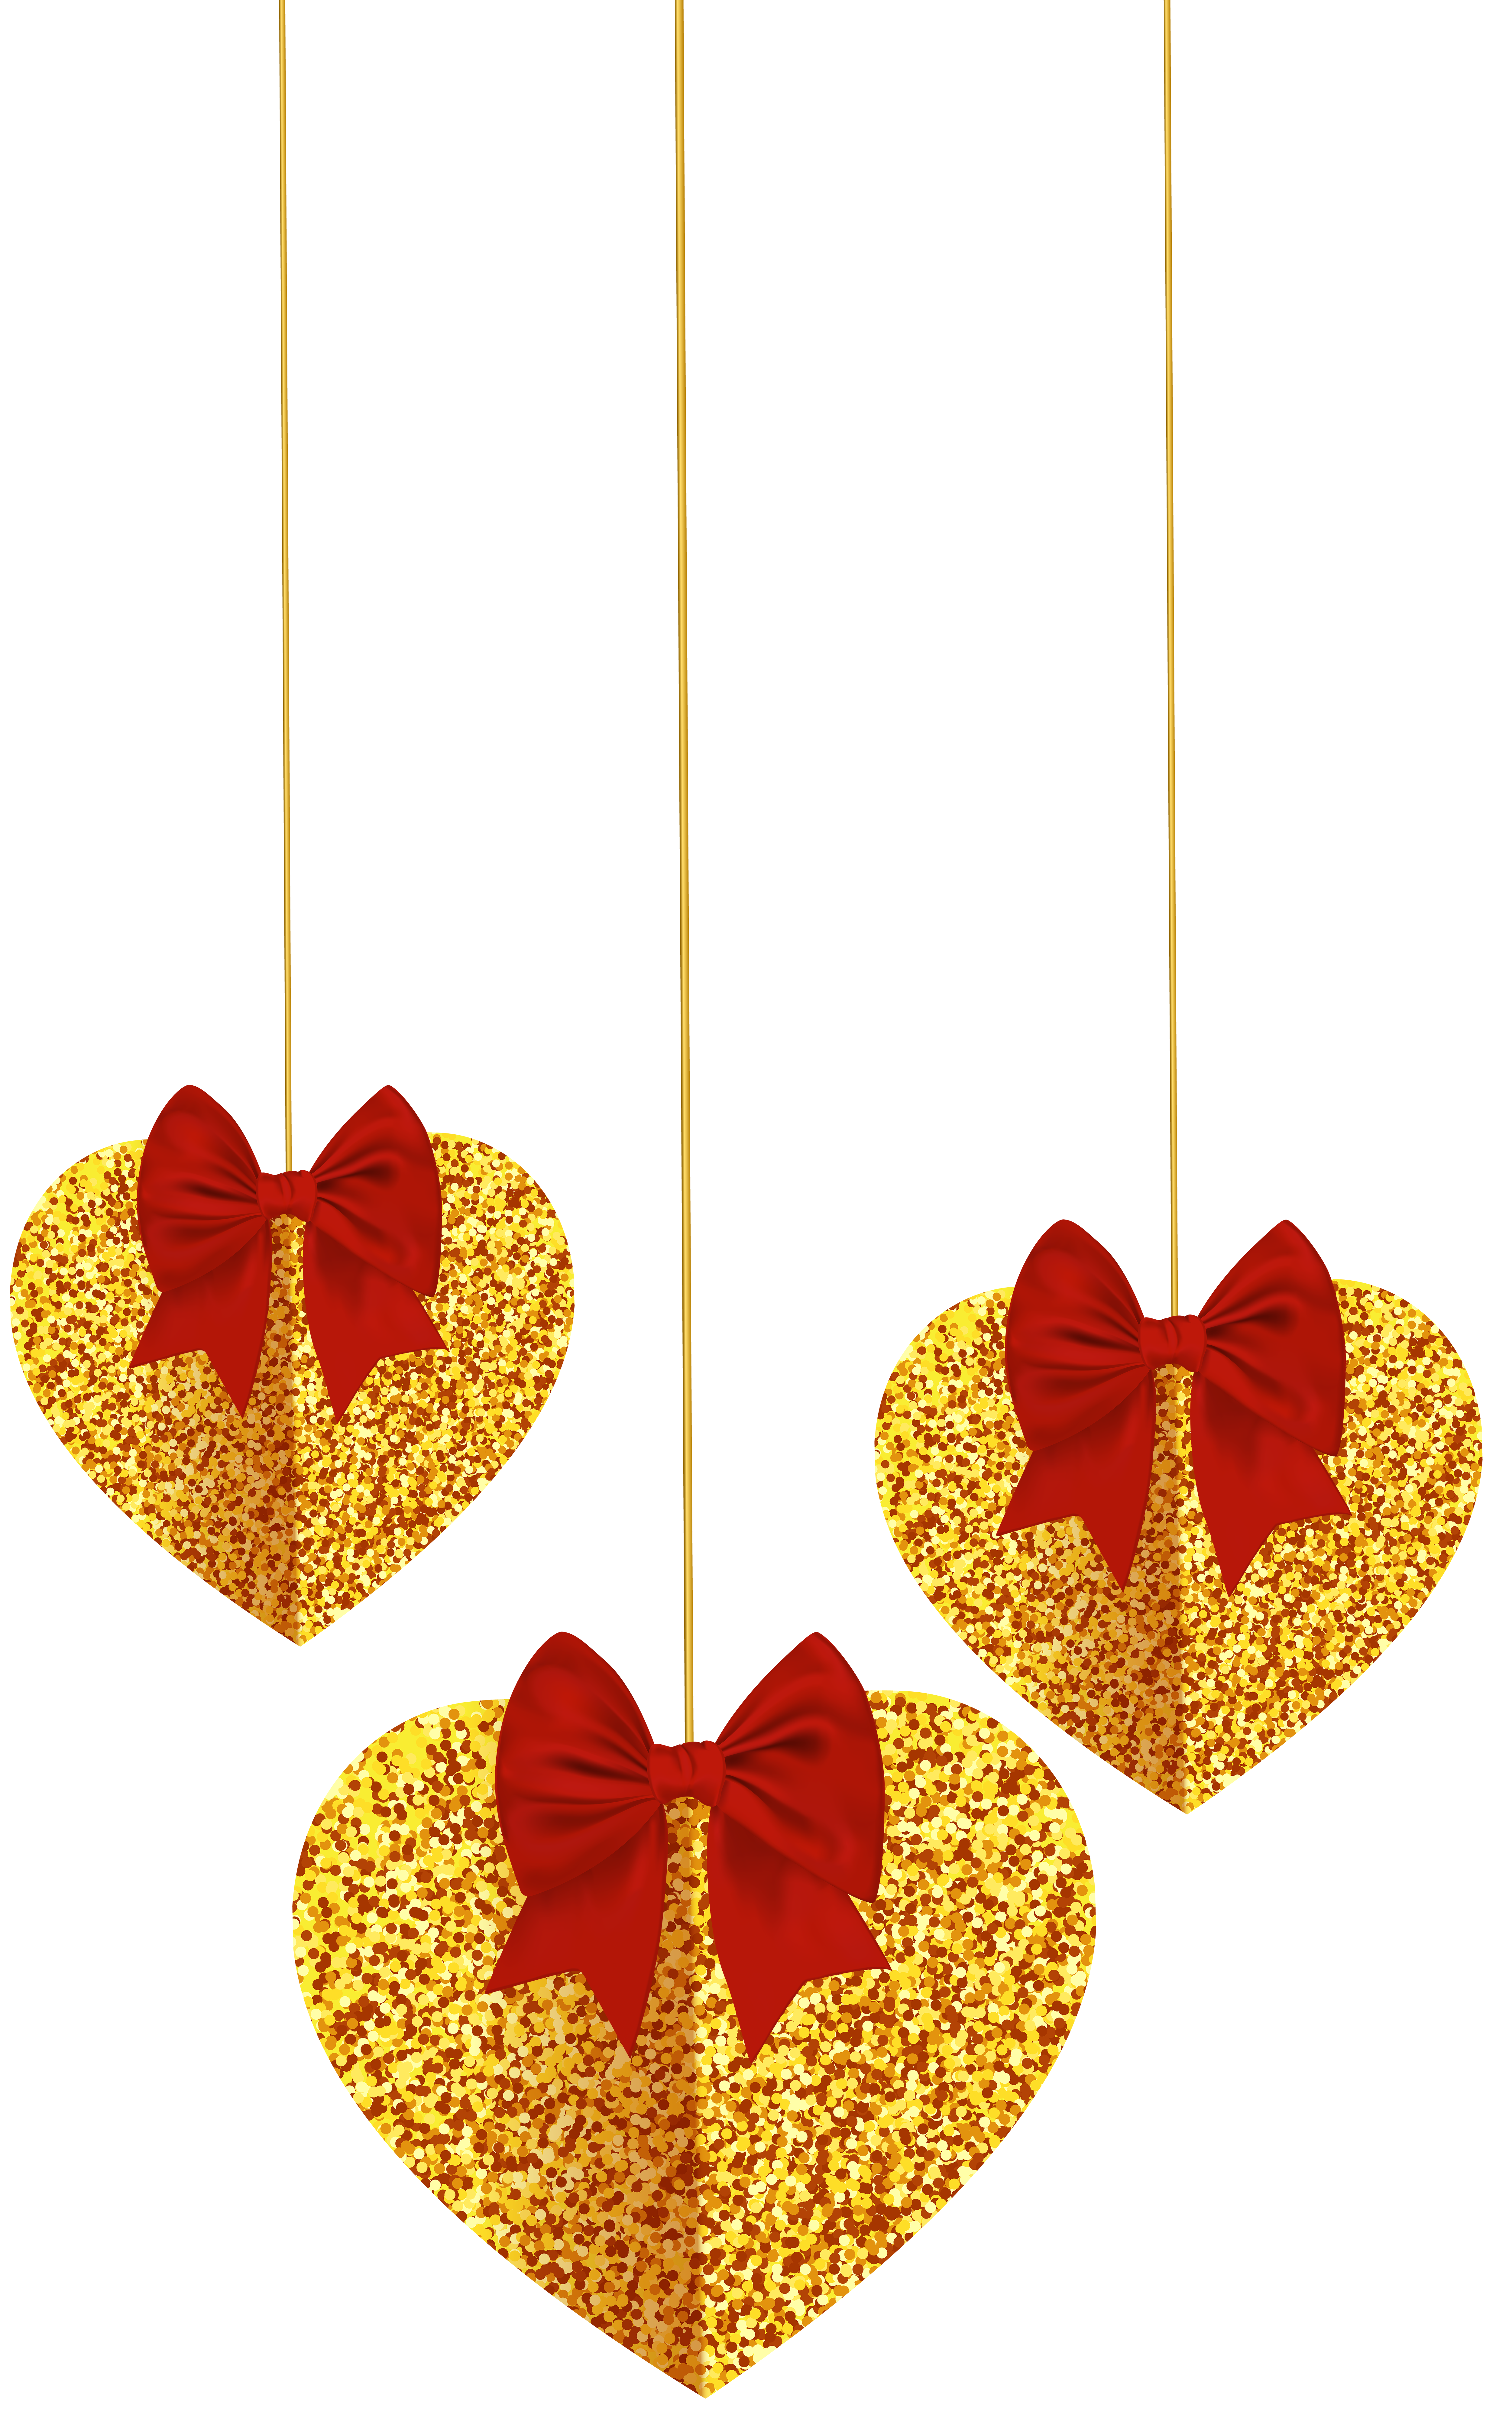 Hanging crown clipart picture library library Hanging Hearts Deco Transparent Clip Art Image | Gallery ... picture library library